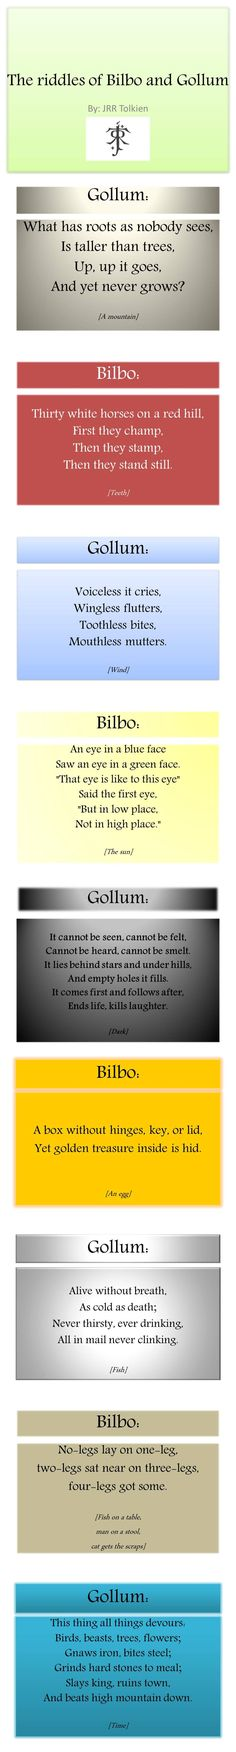 Tolkien was so creative, I'd never heard any of these riddles in my life before i read them in the book.